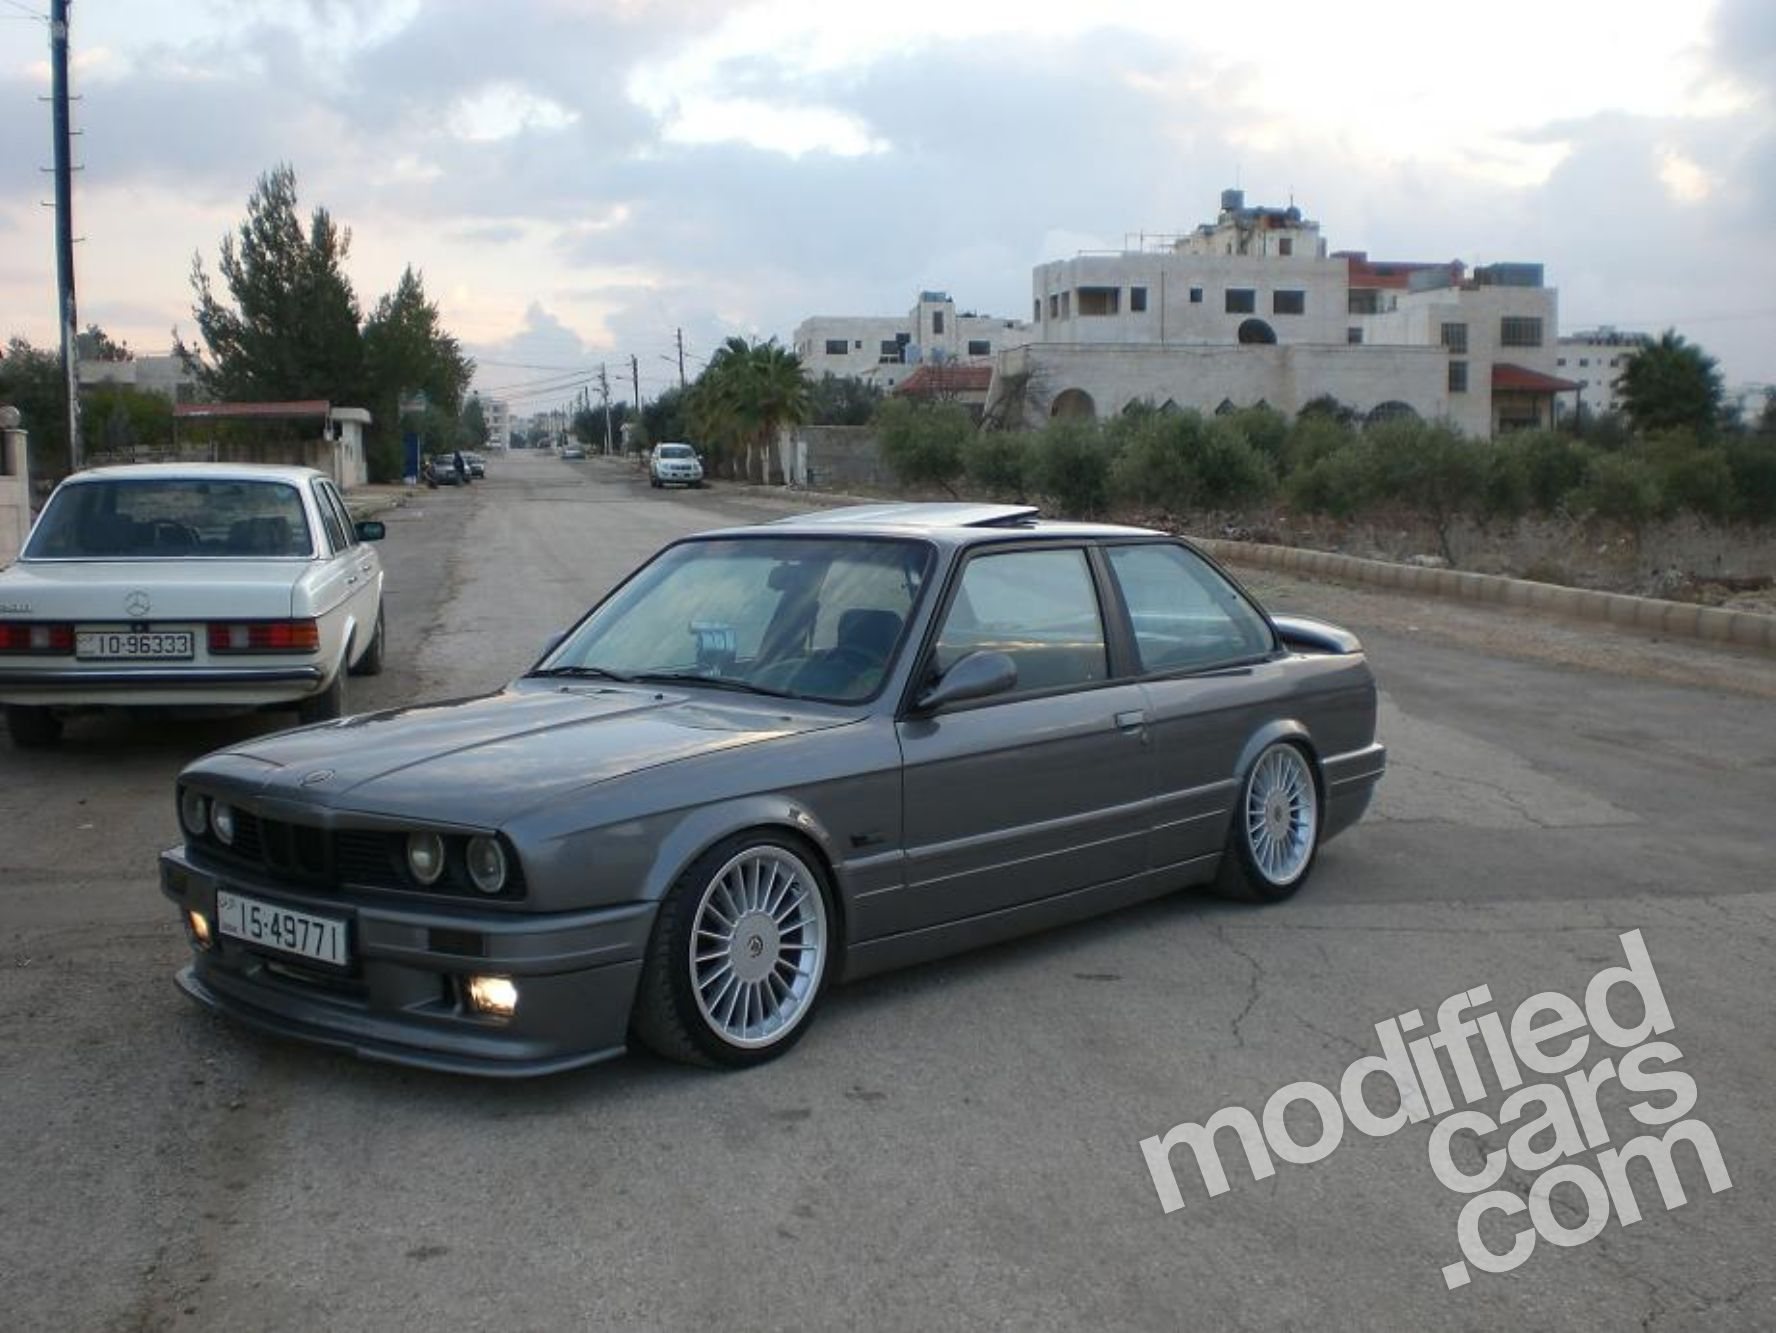 Modded Bmw E30 320i Hails From Jordan Autoevolution